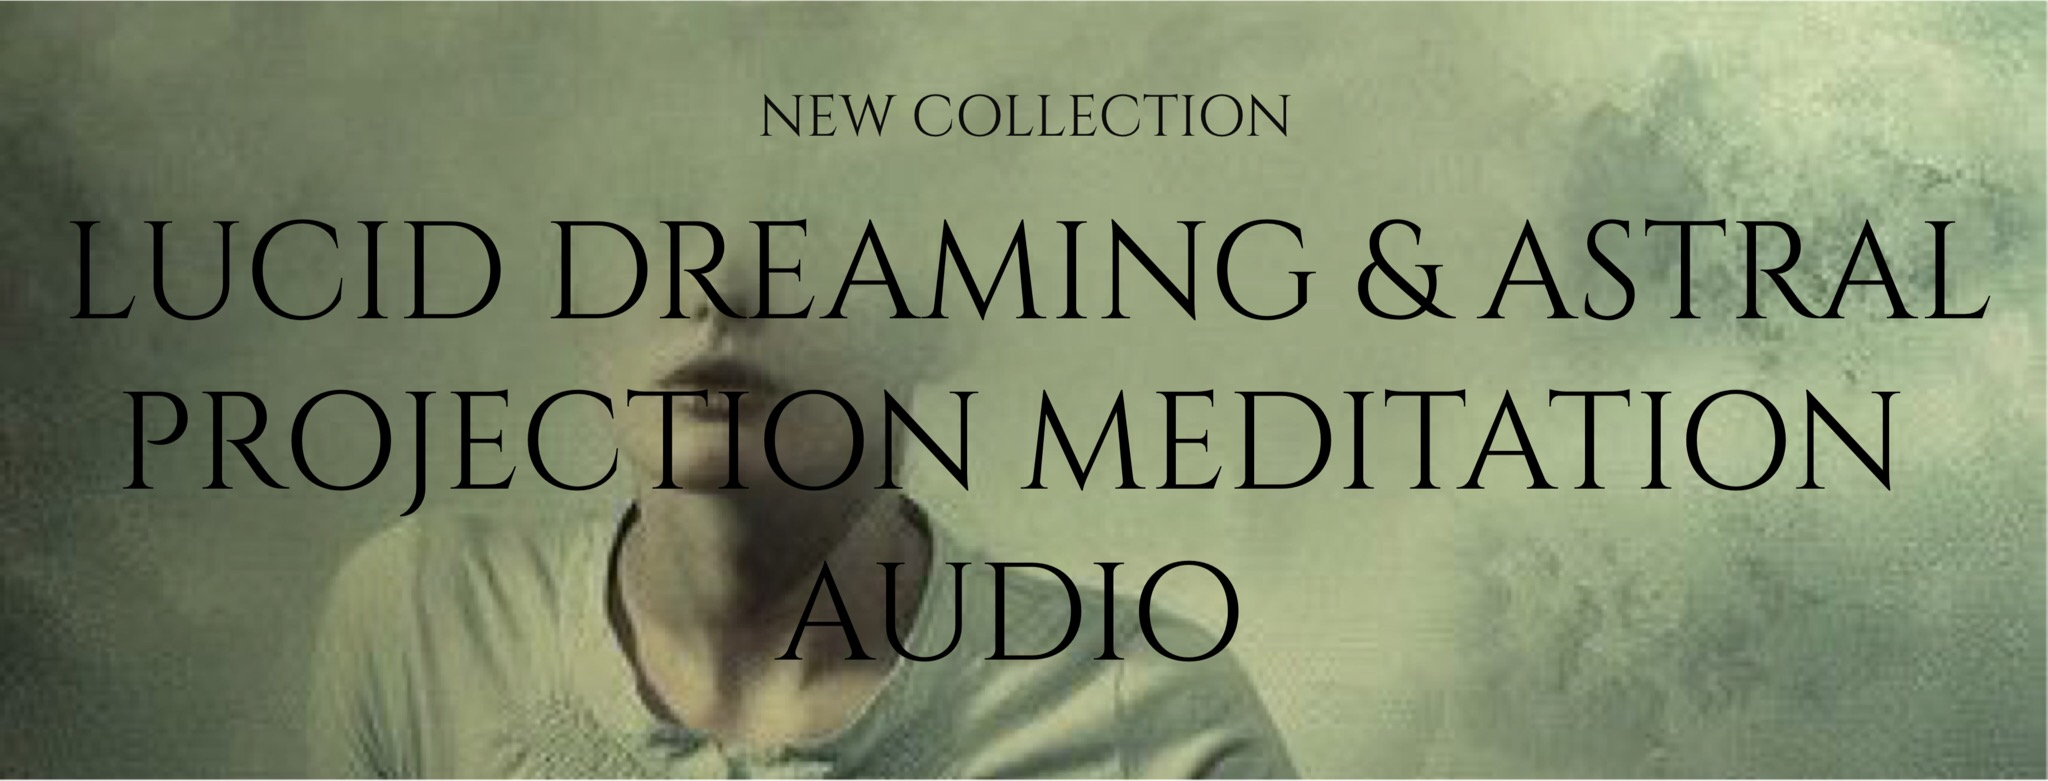 Lucid dreaming and Astral Projection Meditation Audio Files